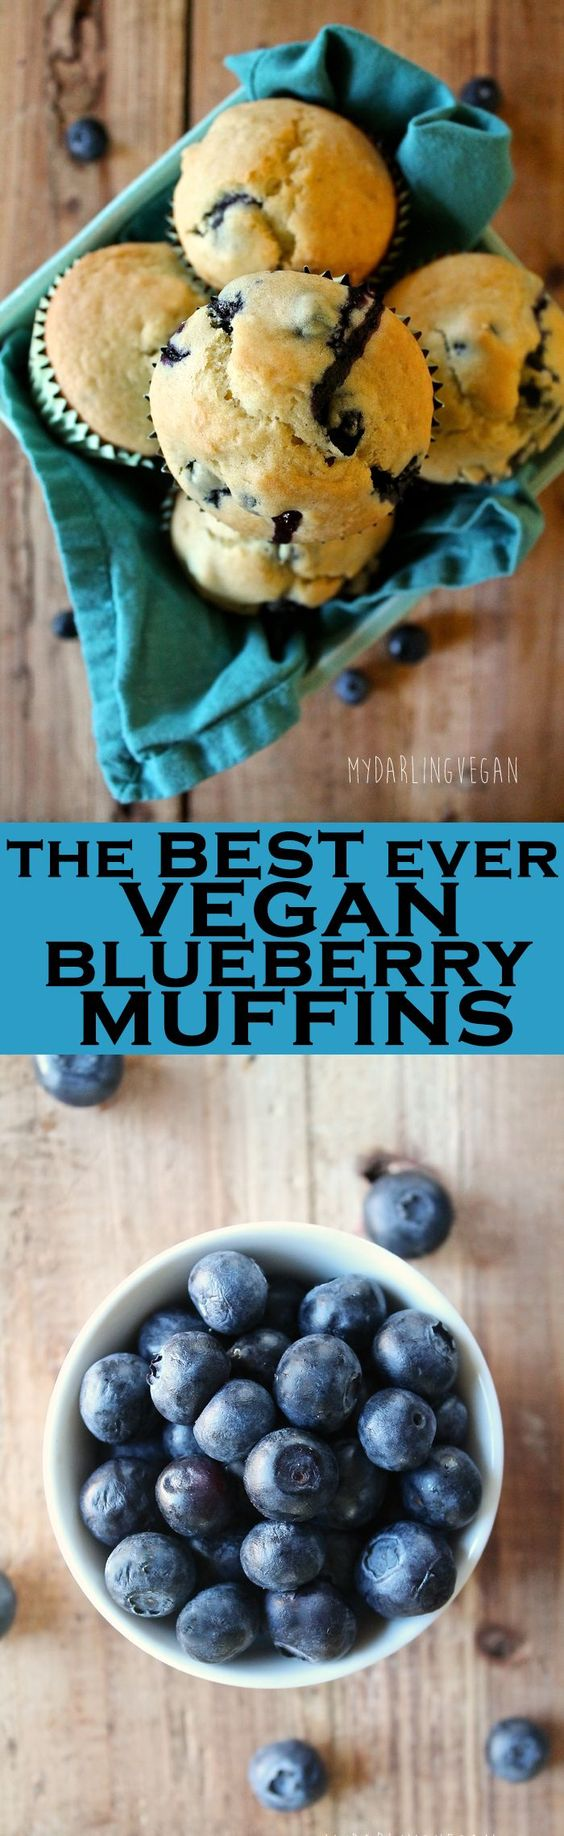 These vegan blueberry muffins